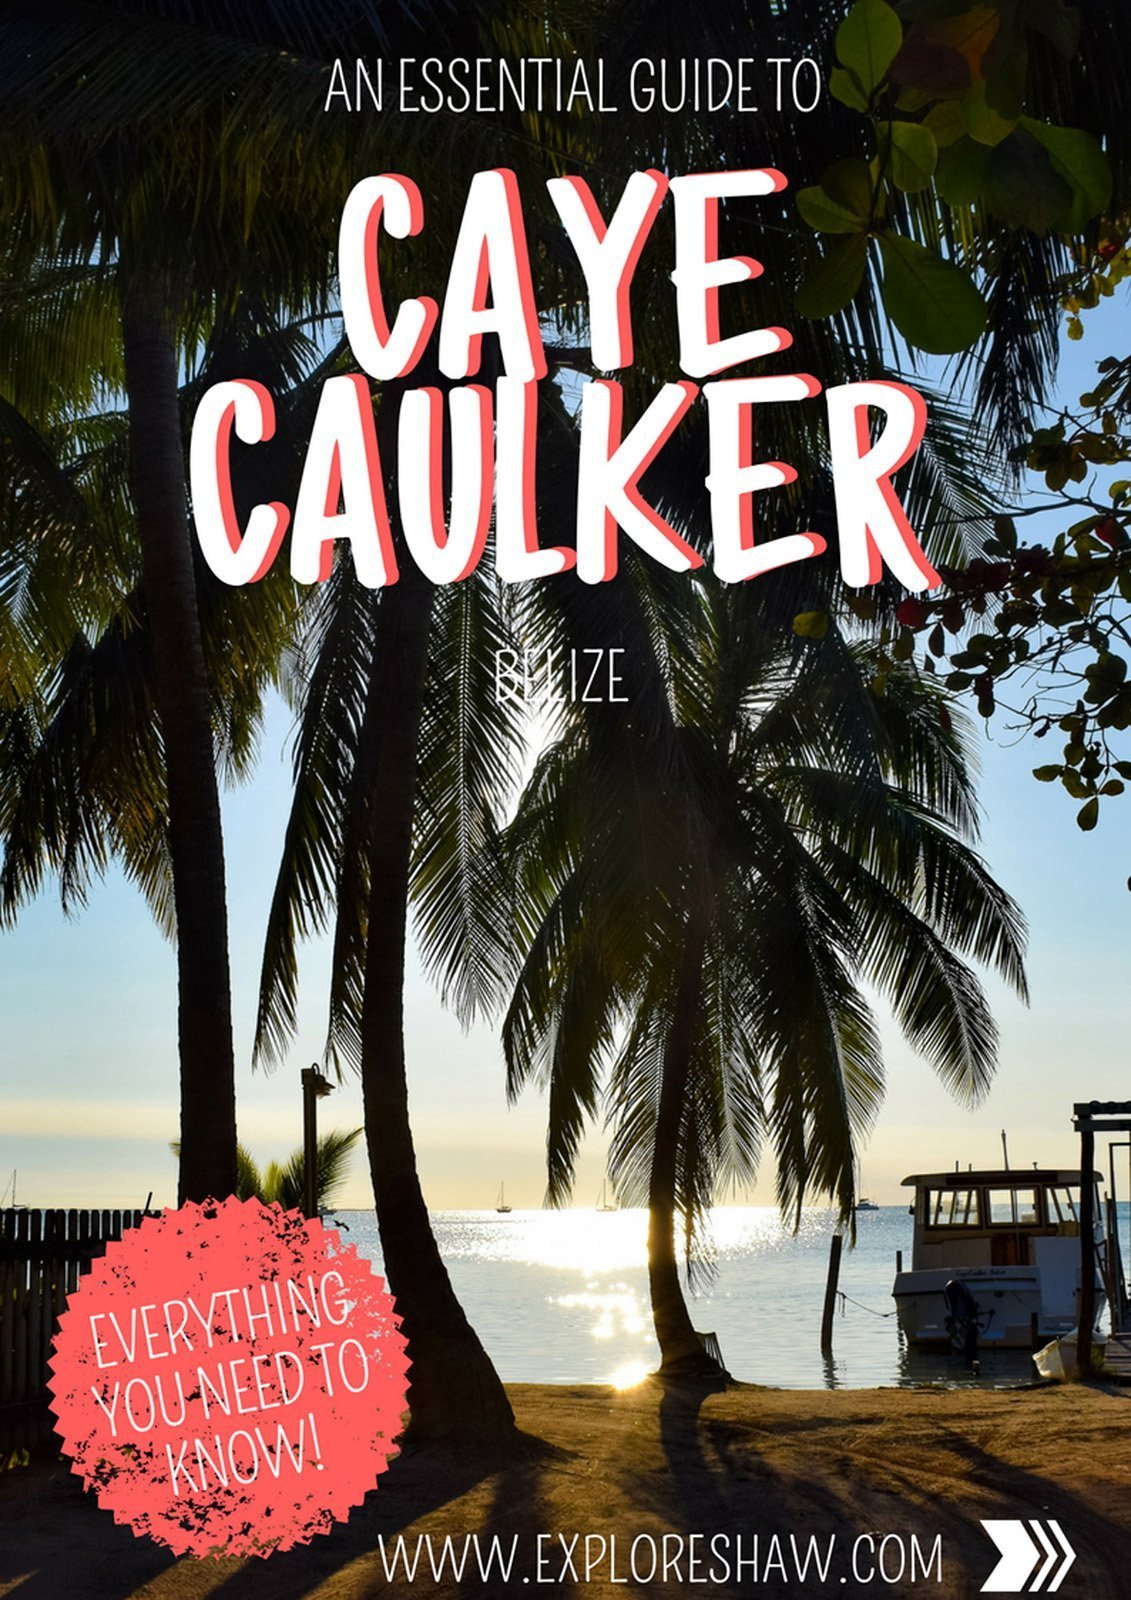 An Essential Guide To Caye Caulker, Belize